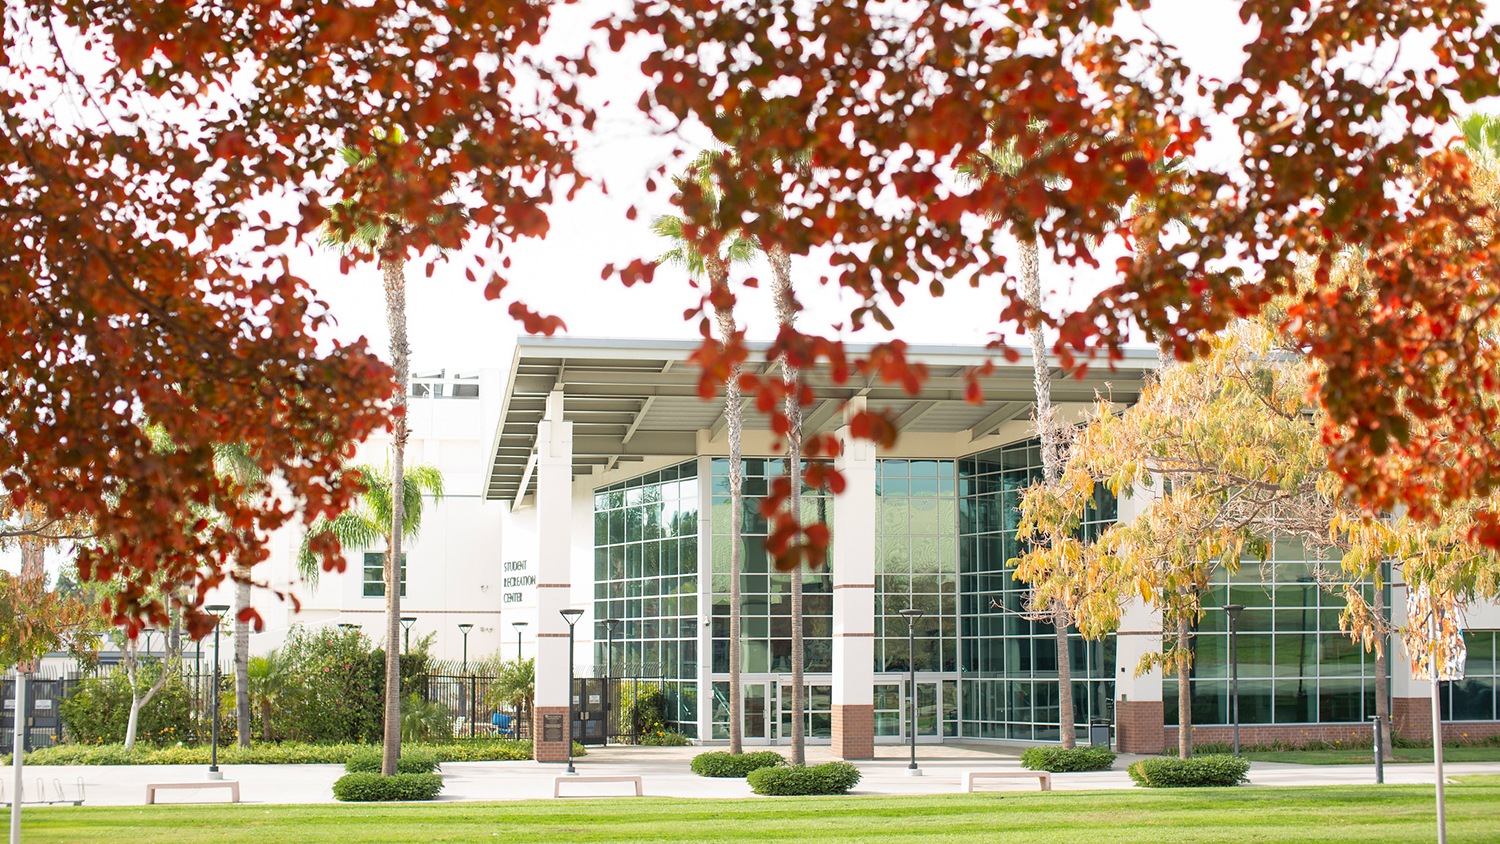 Autumn colors at the Titan Student Union at Cal State Fullerton